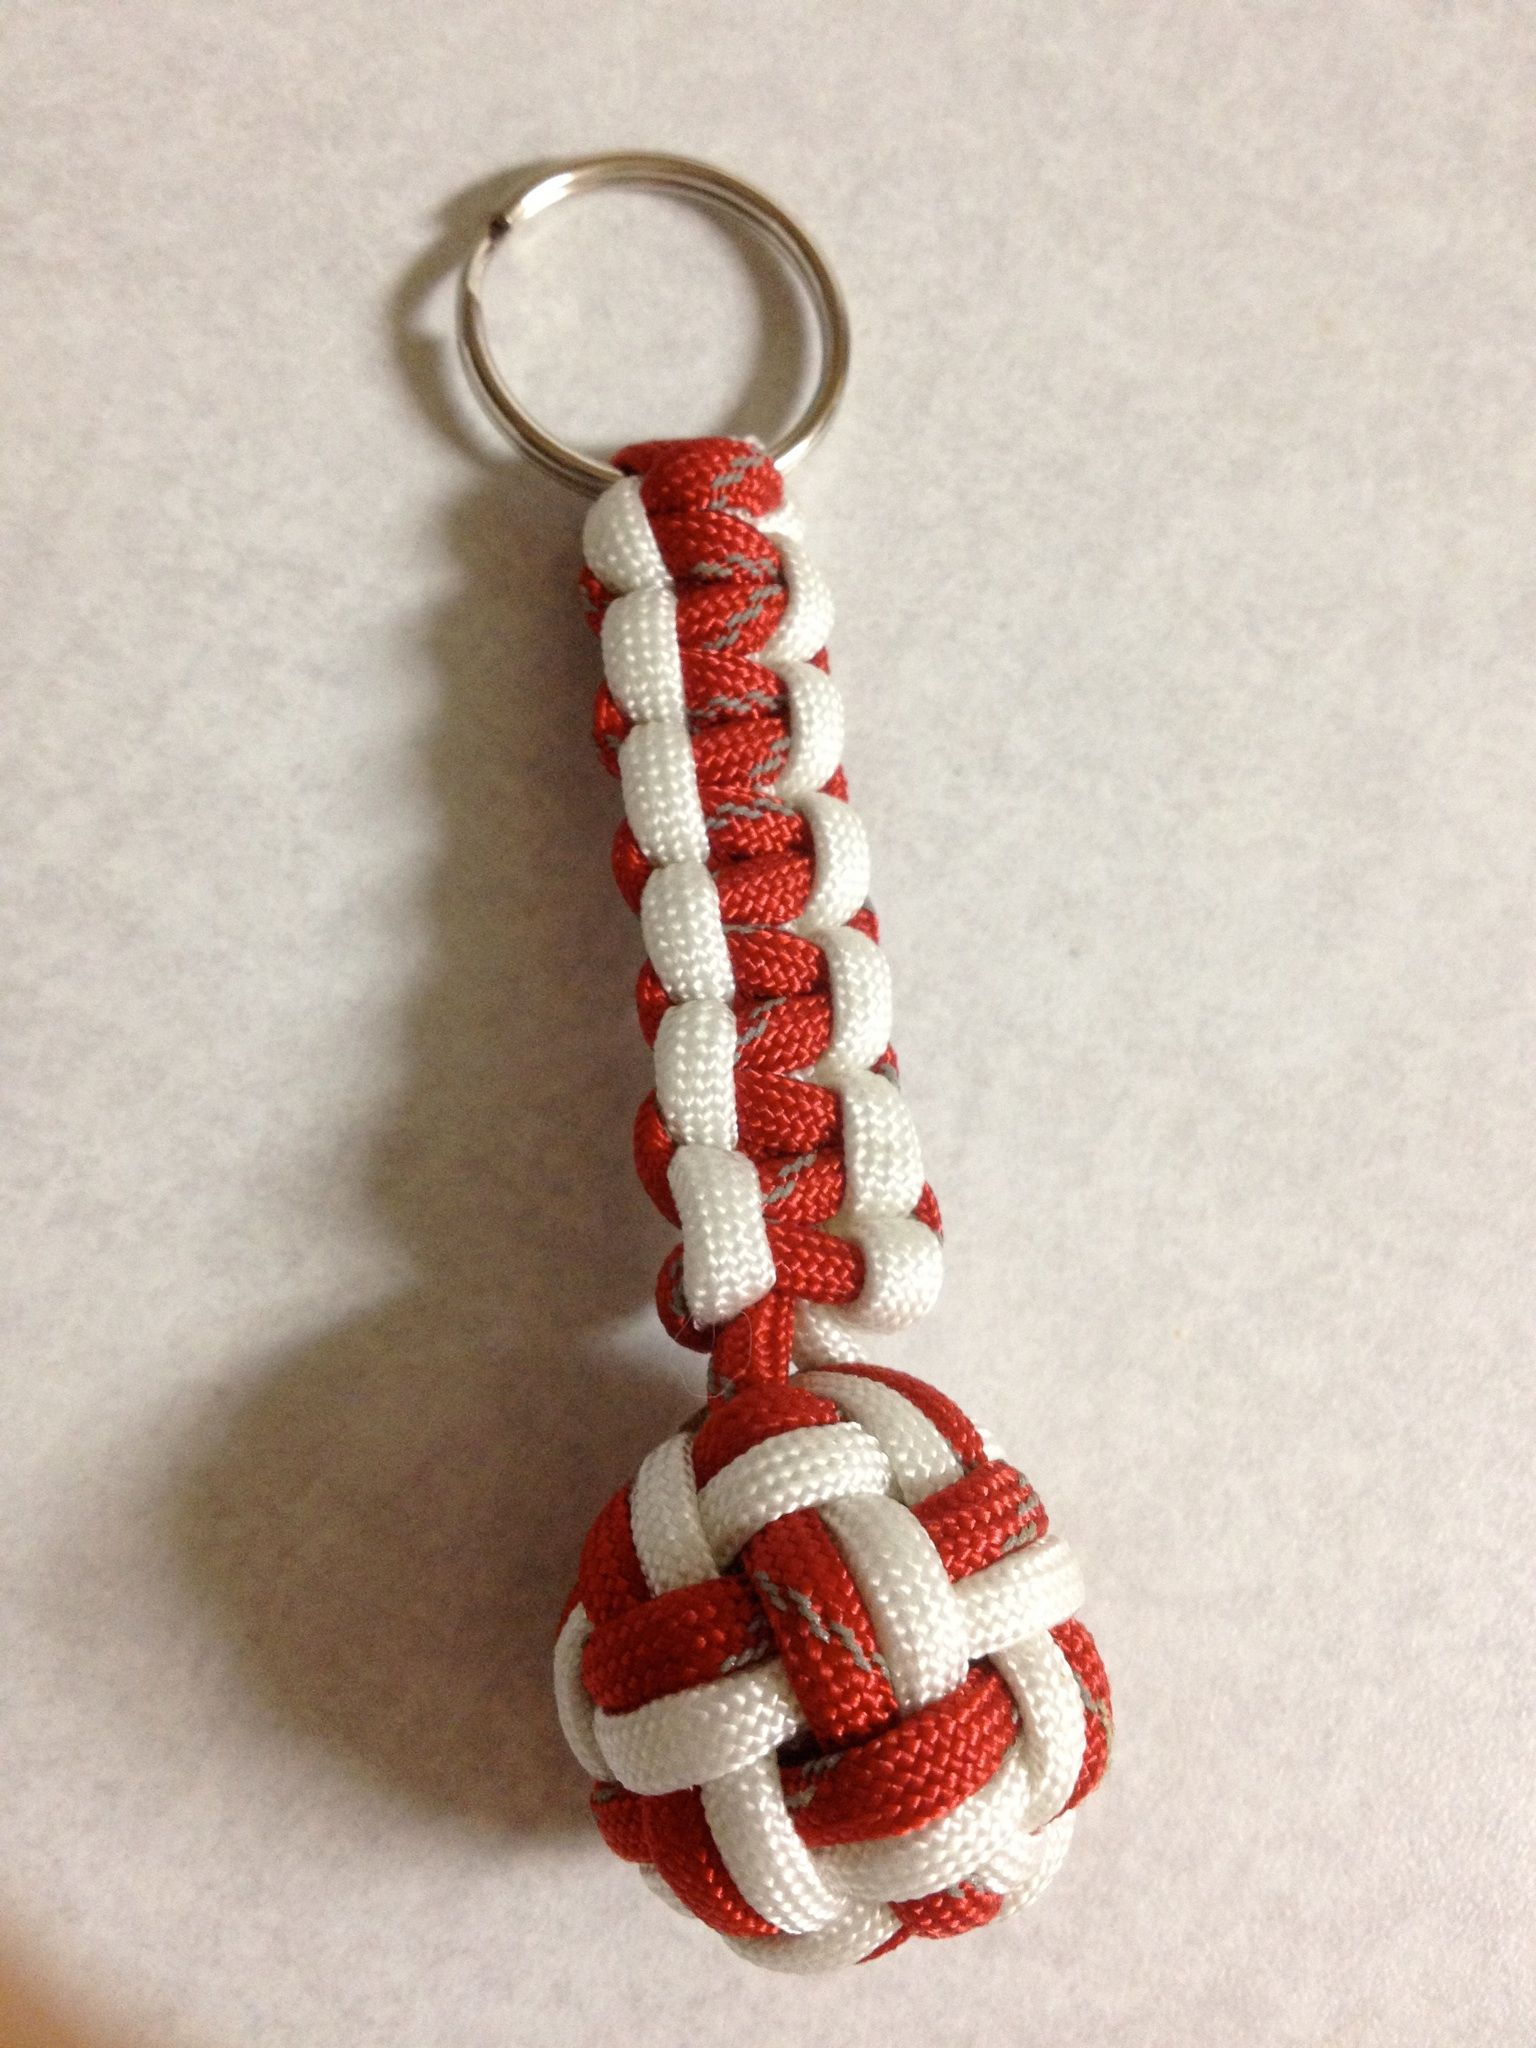 Paracord Globe Knot Keychain Www Facebook Com 550paracord